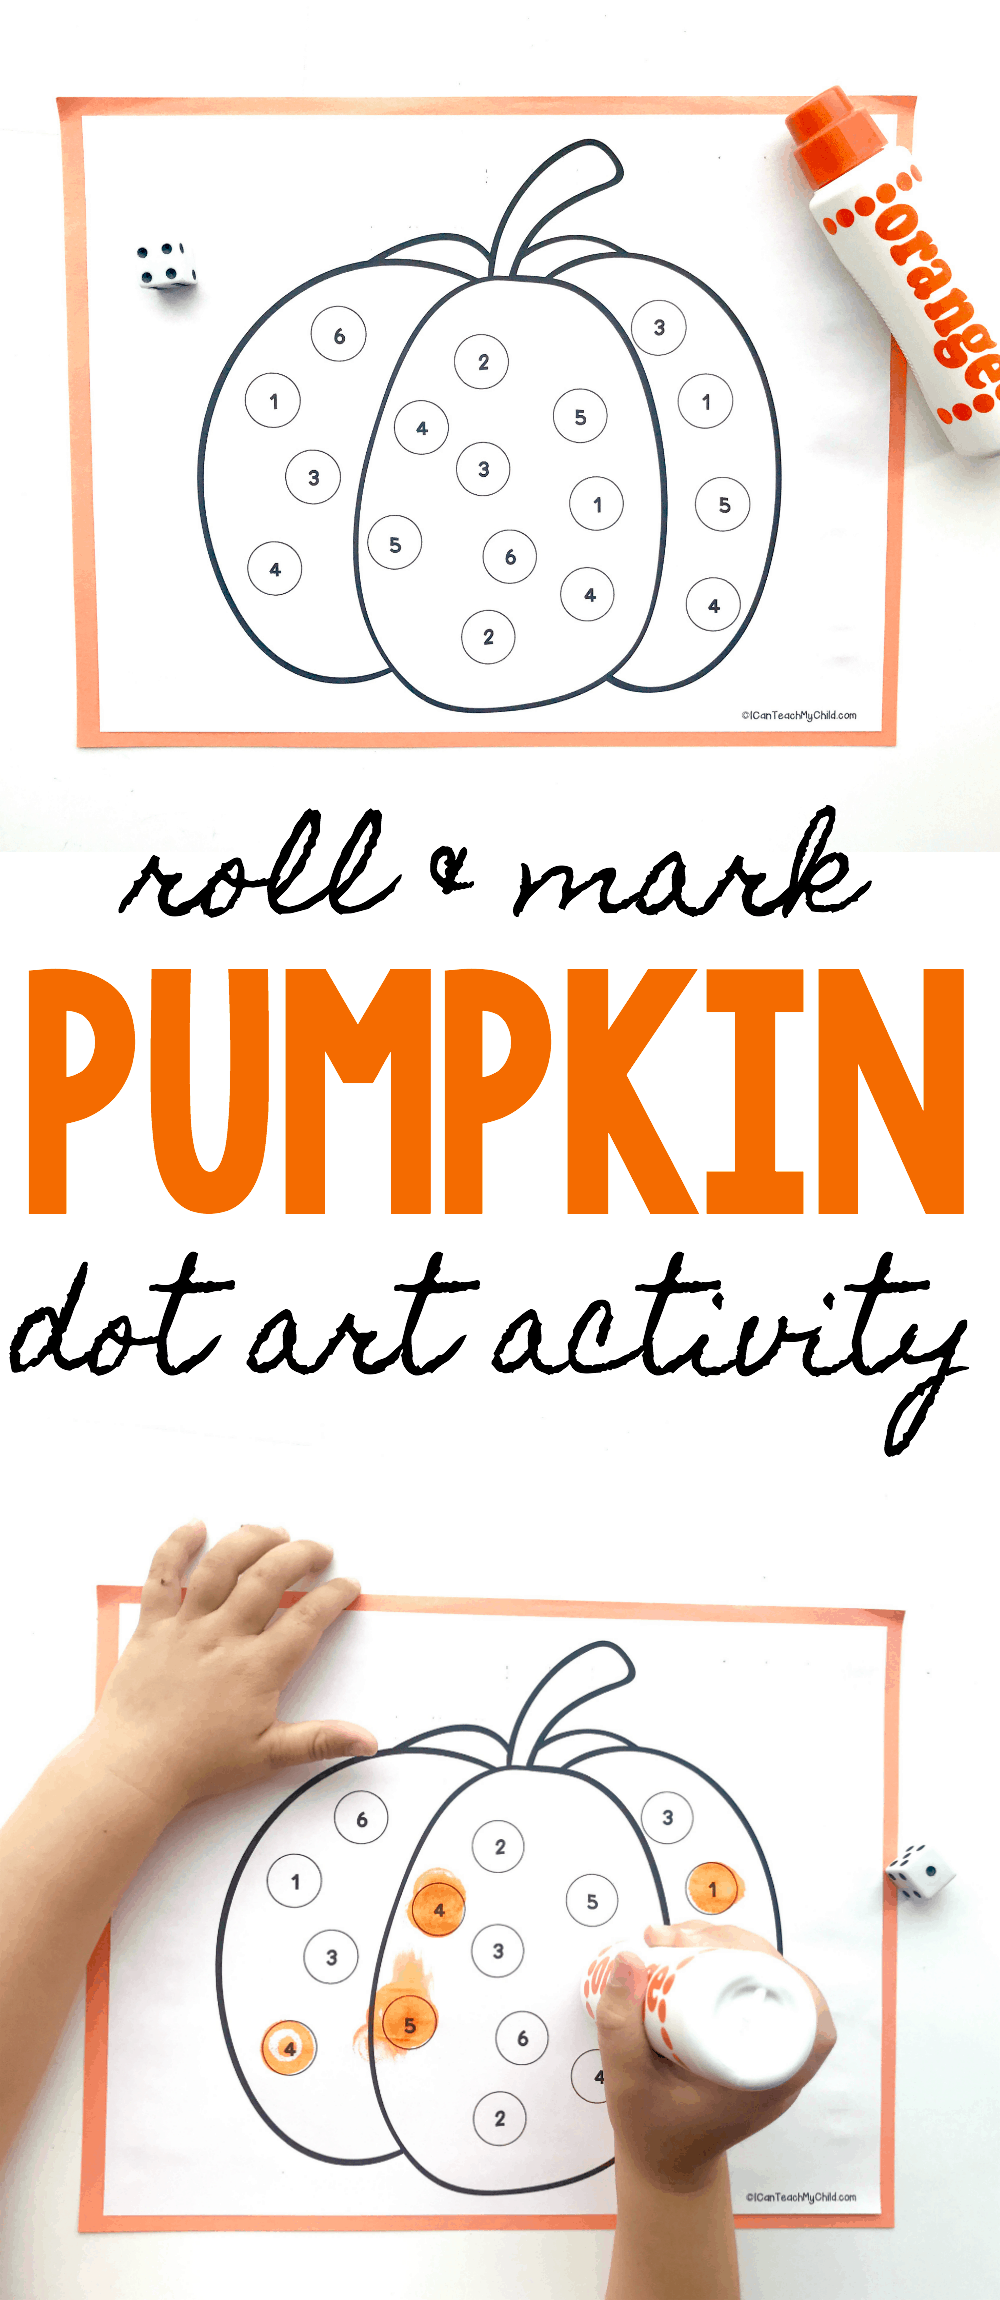 roll and mark pumpkin dot art activity i can teach my child